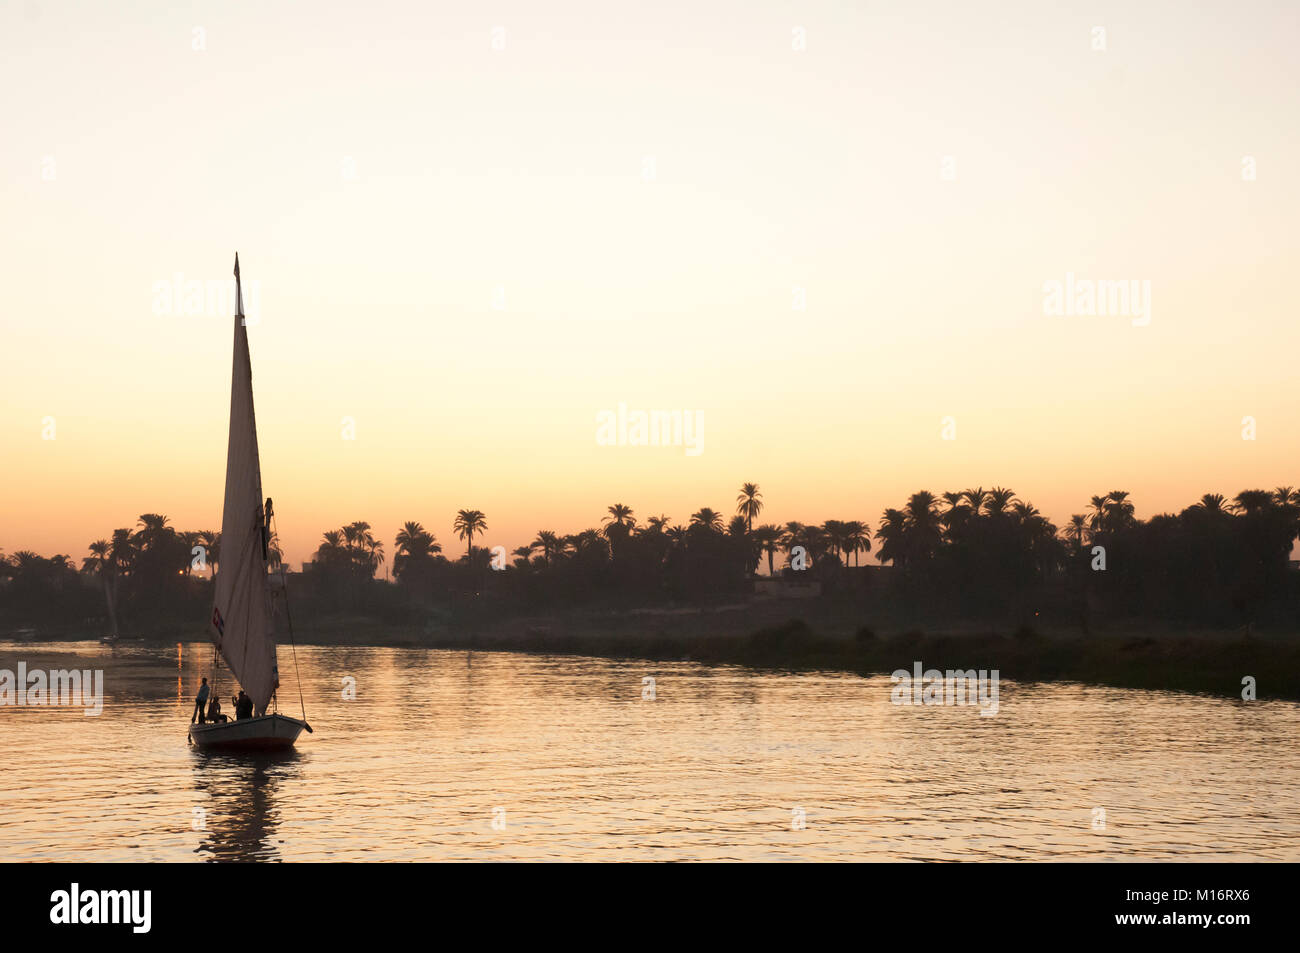 Traditional felucca ketch sailing on the Nile at sunset, Luxor, Egypt - Stock Image